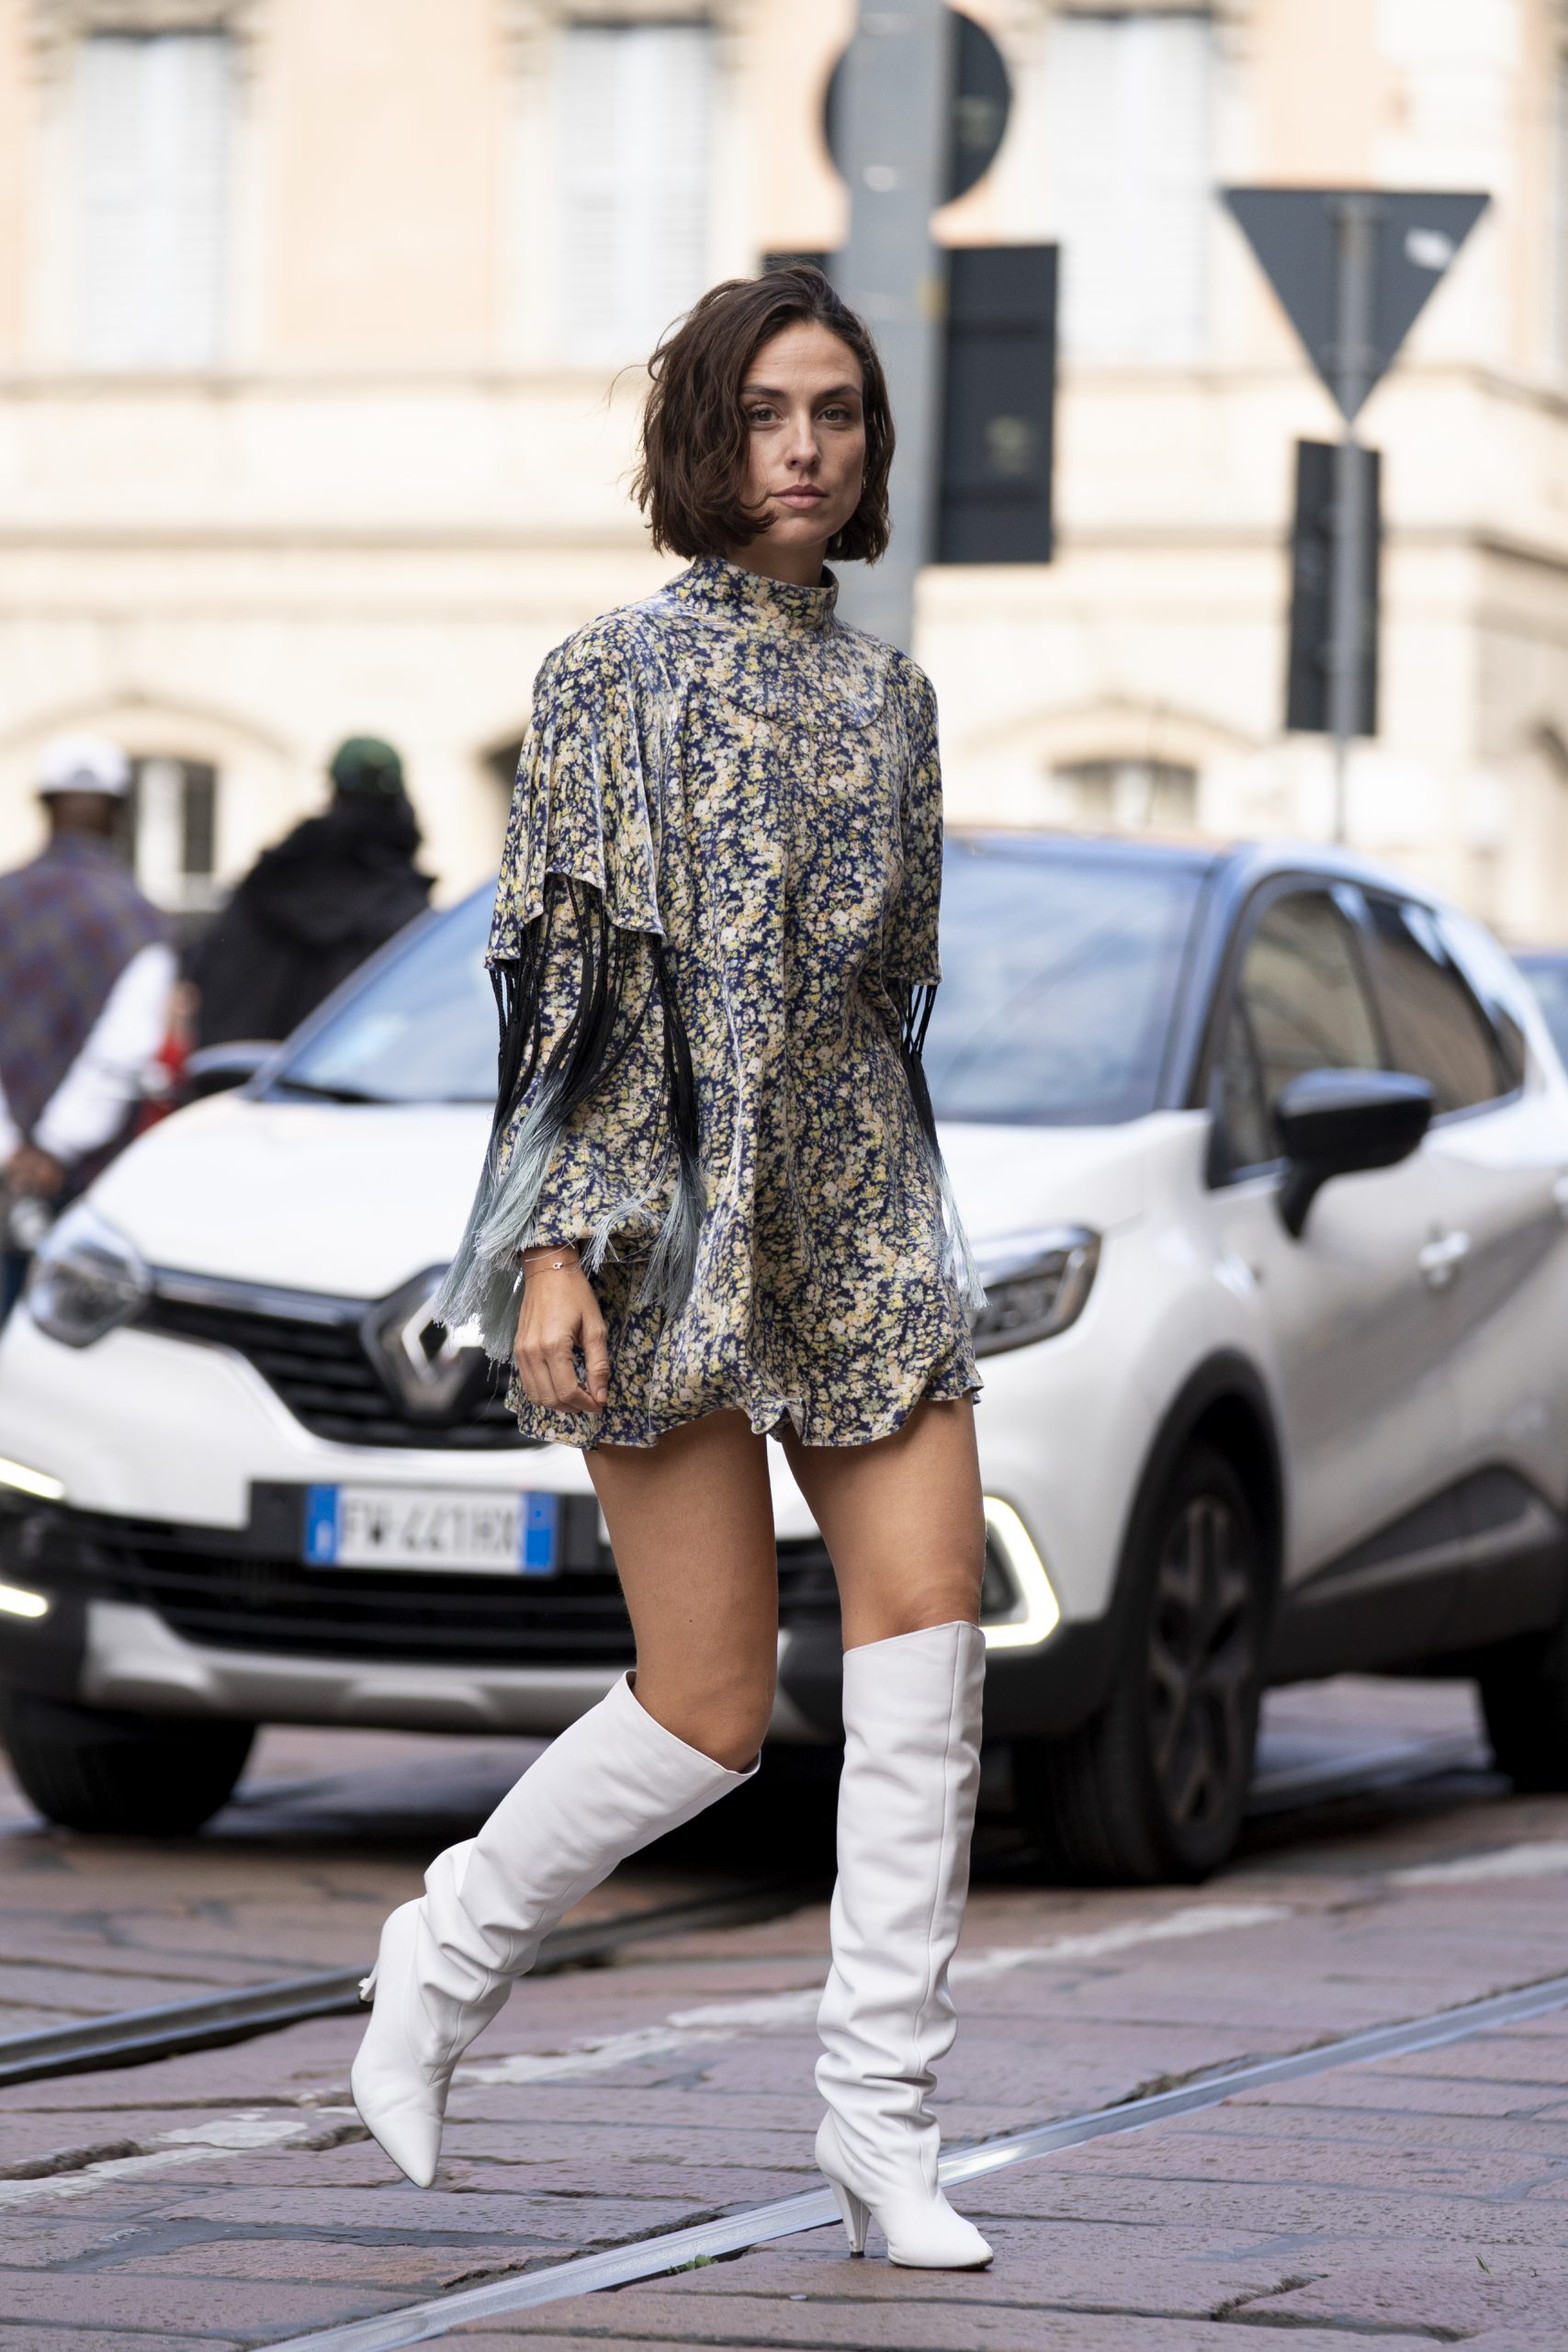 Vincenzo Grillo's Best Street Style Looks of Spring 2021